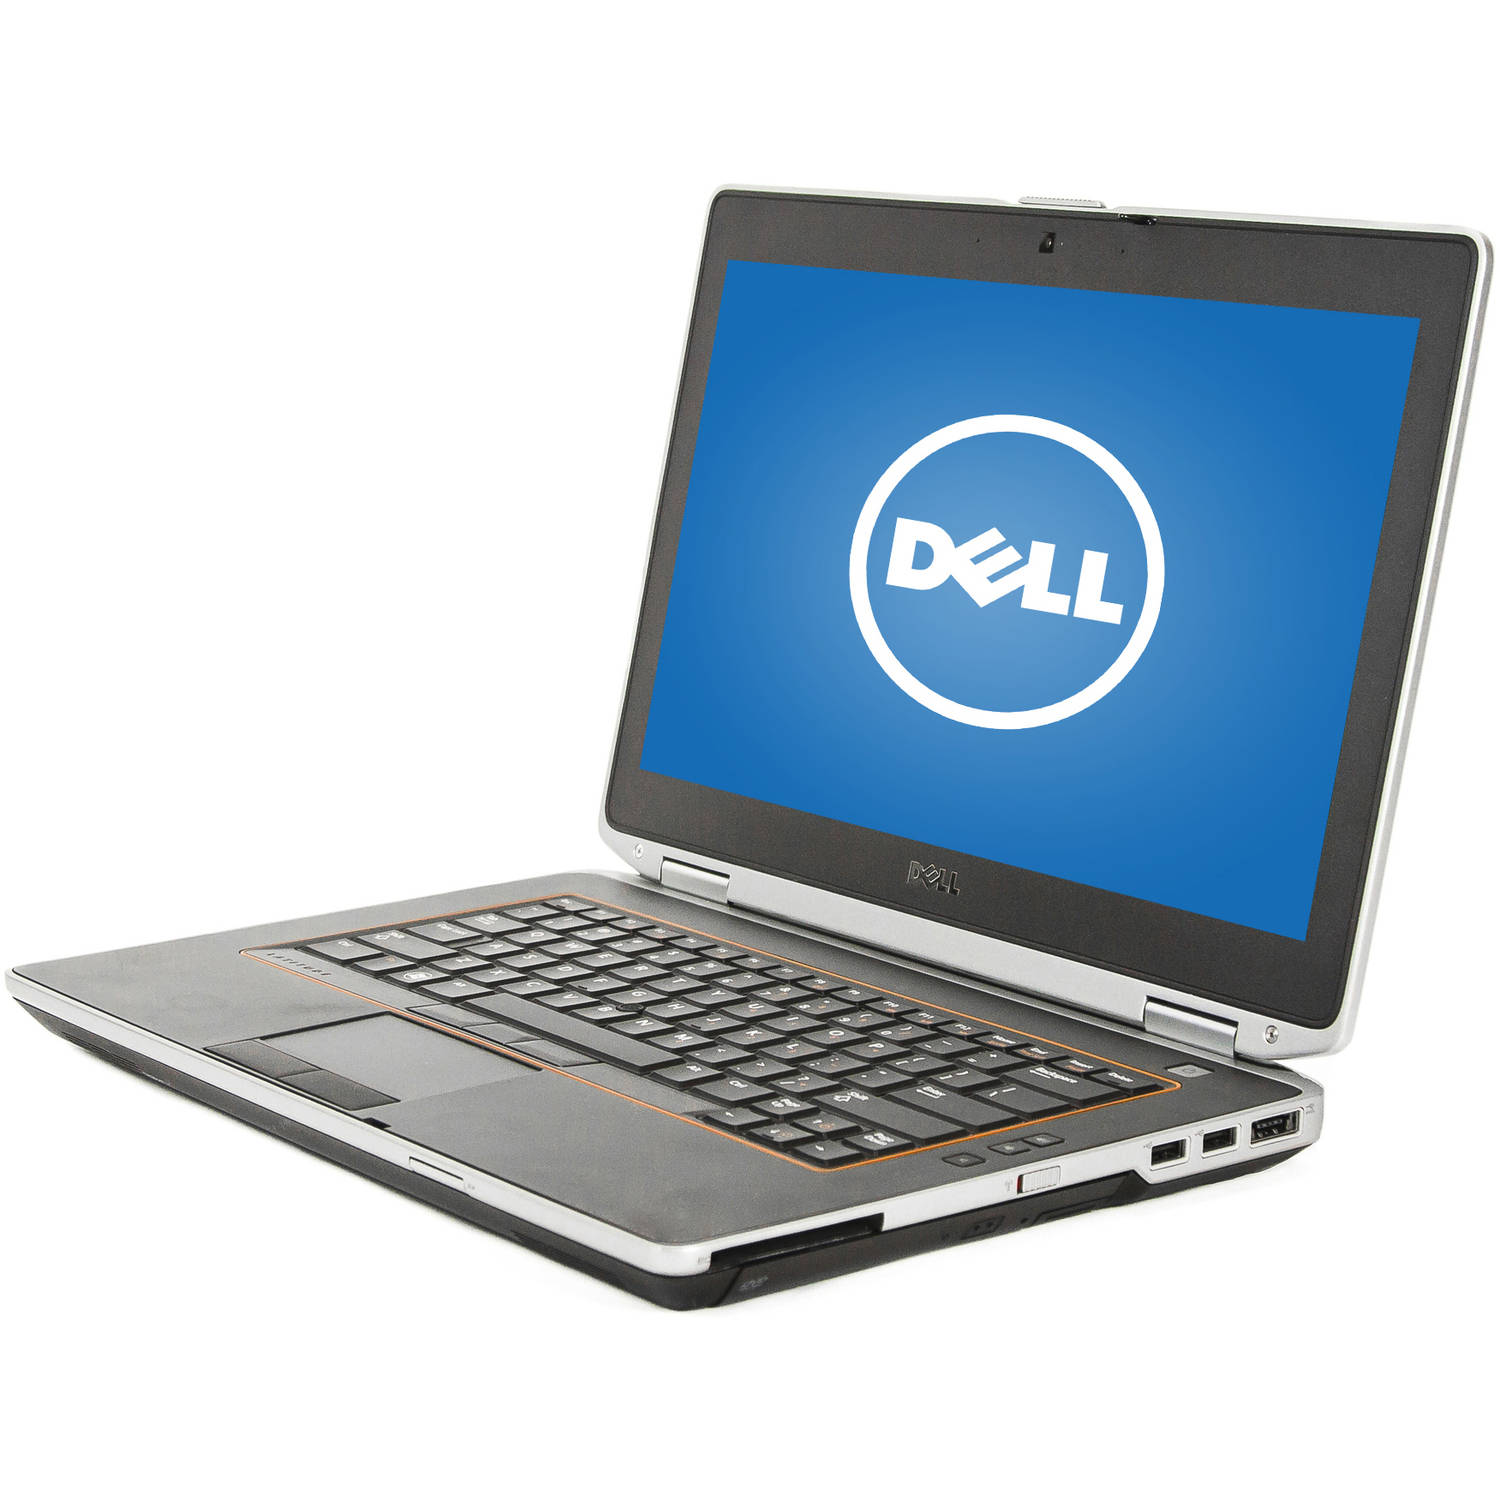 "Refurbished Dell 14"" E6420 Laptop PC with Intel Core i5 Processor, 4GB Memory, 320GB Hard Drive and... by Latitude"